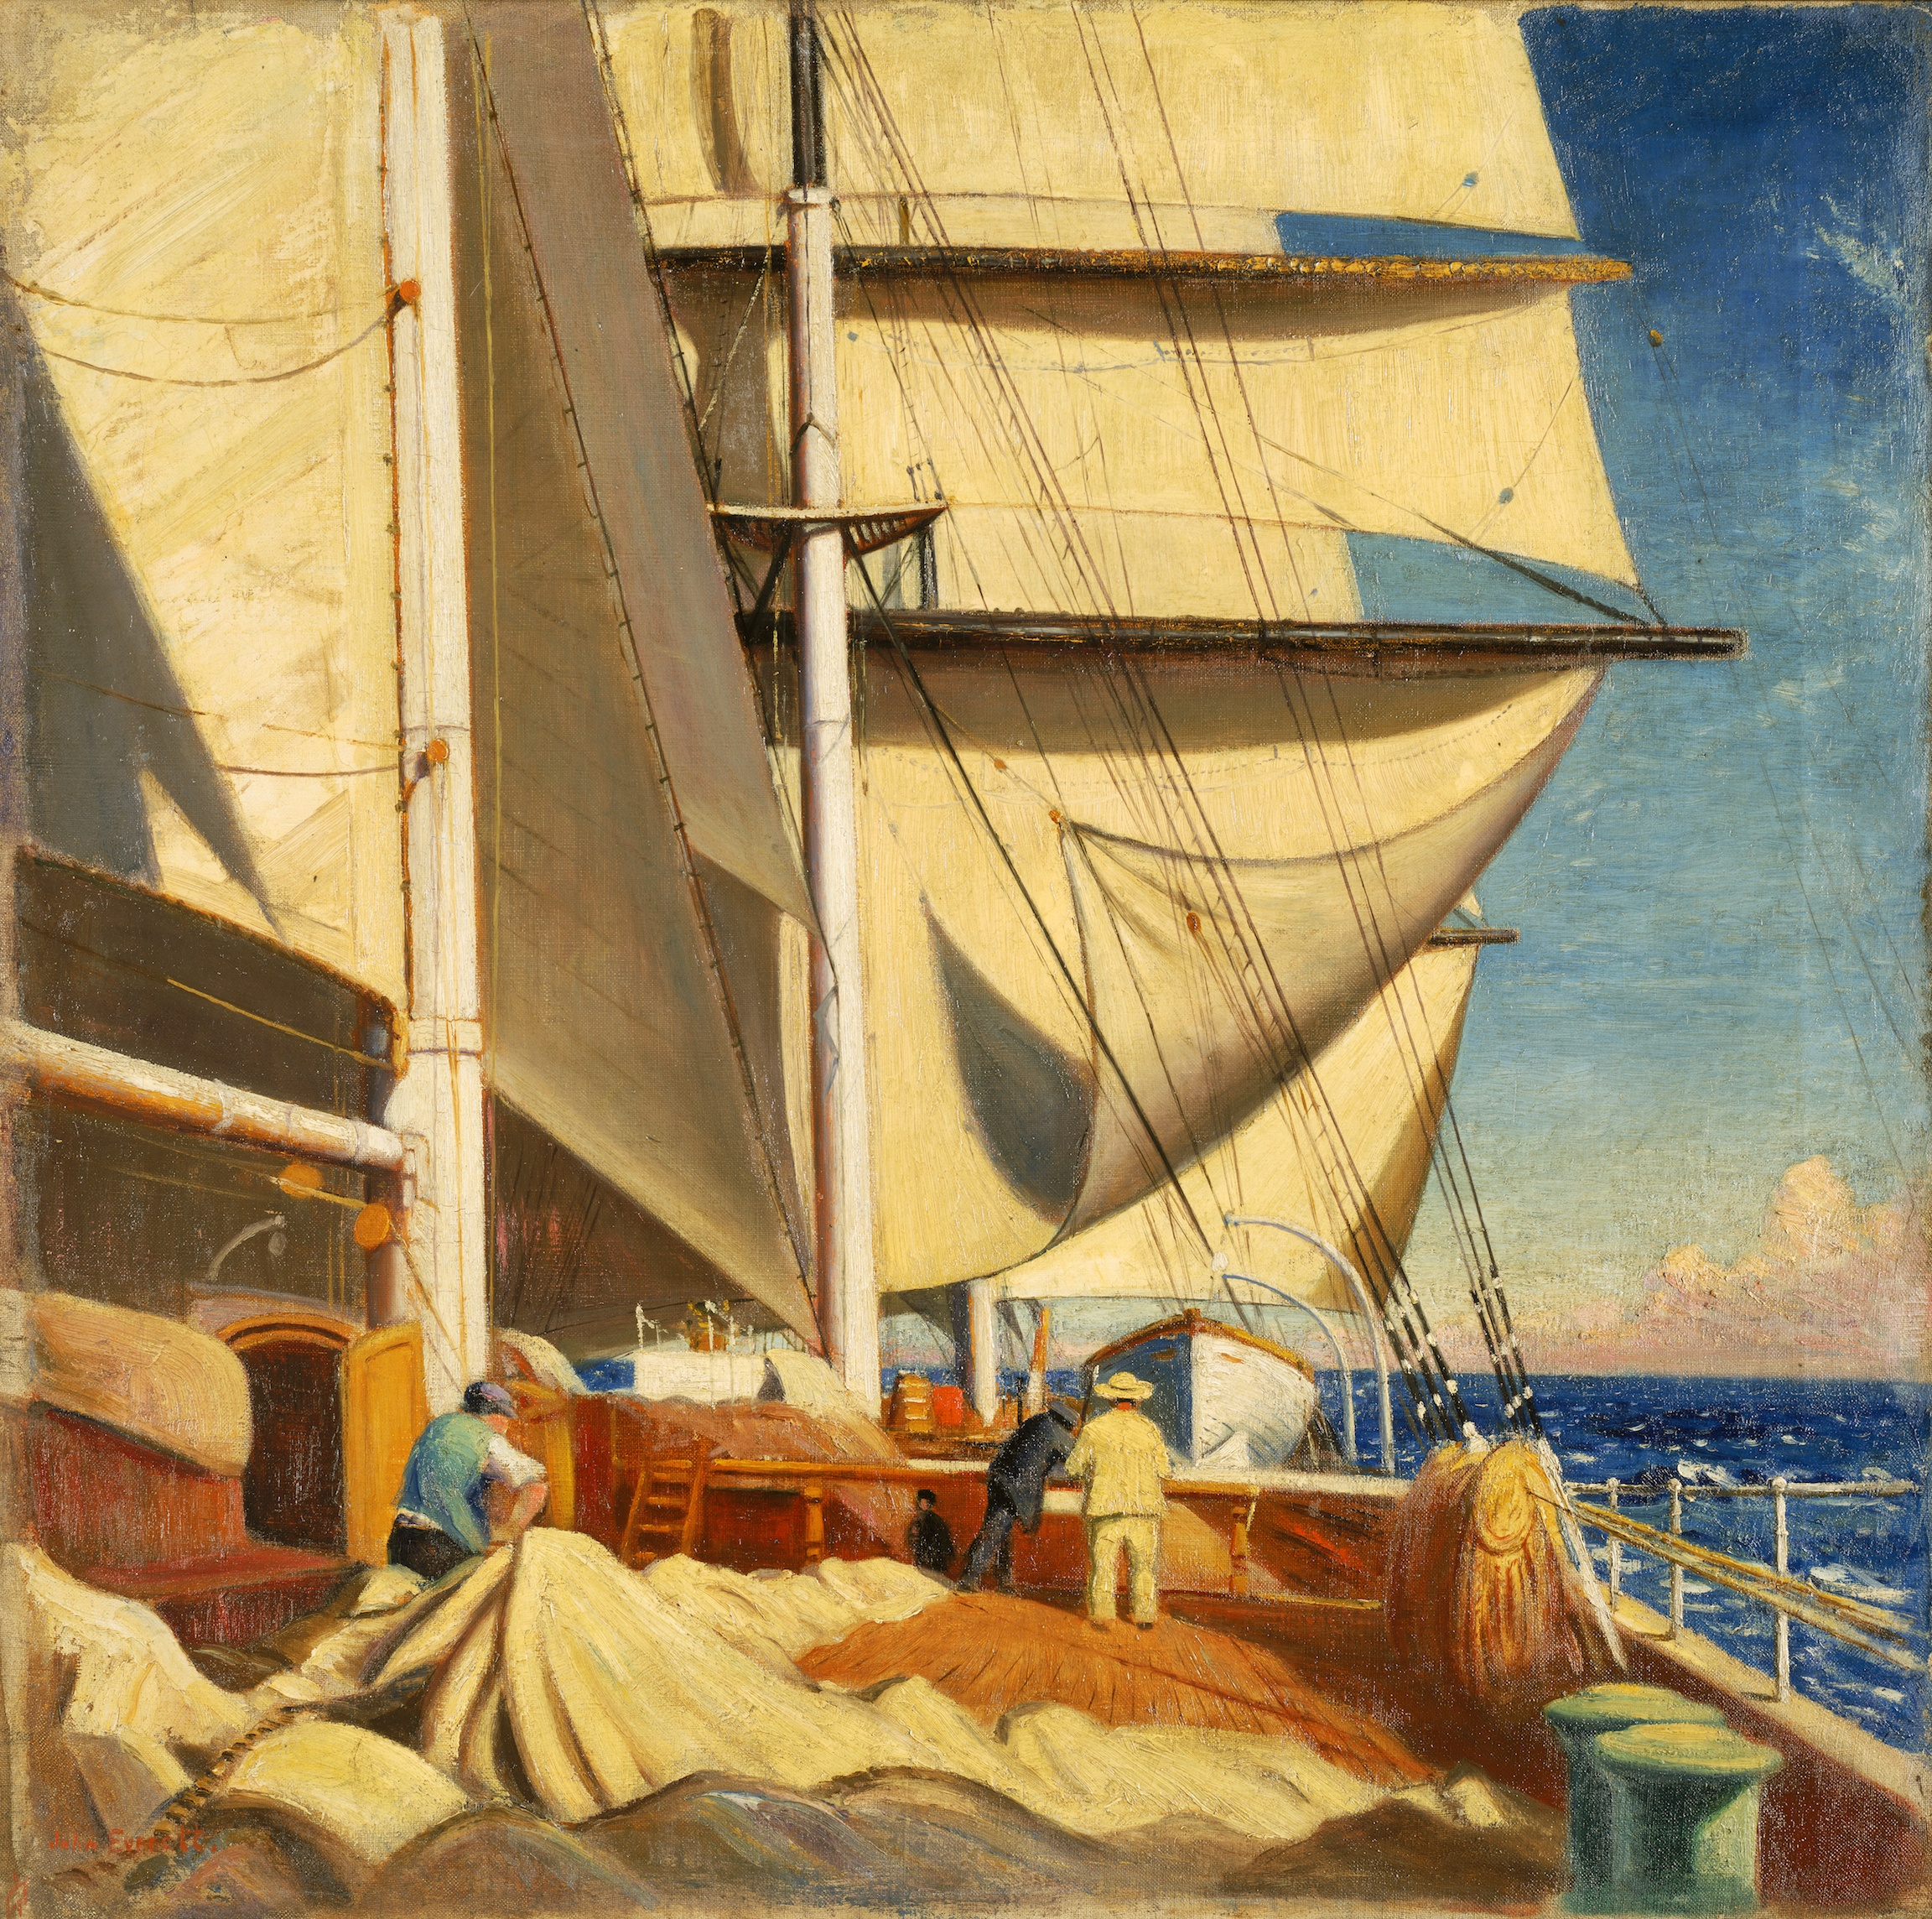 Mending Sails On The Deck Of The 'Birkdale'†